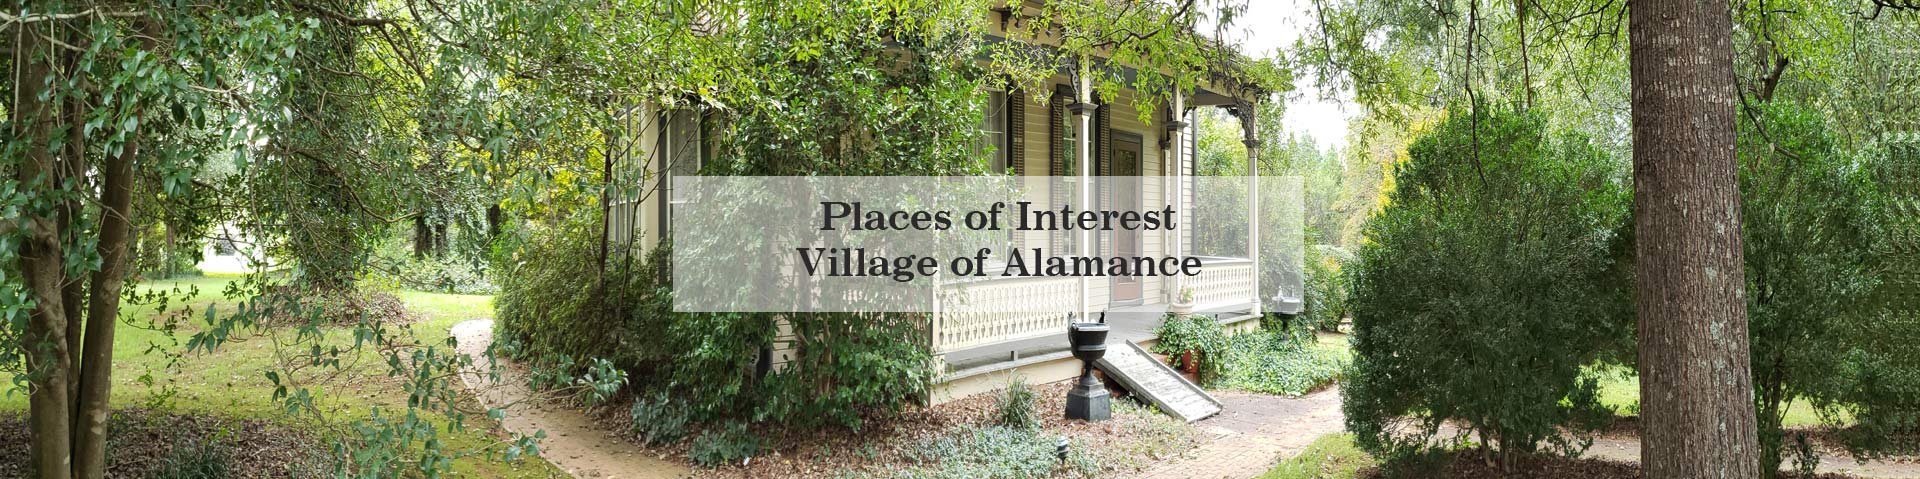 Village of Alamance Places of Interest